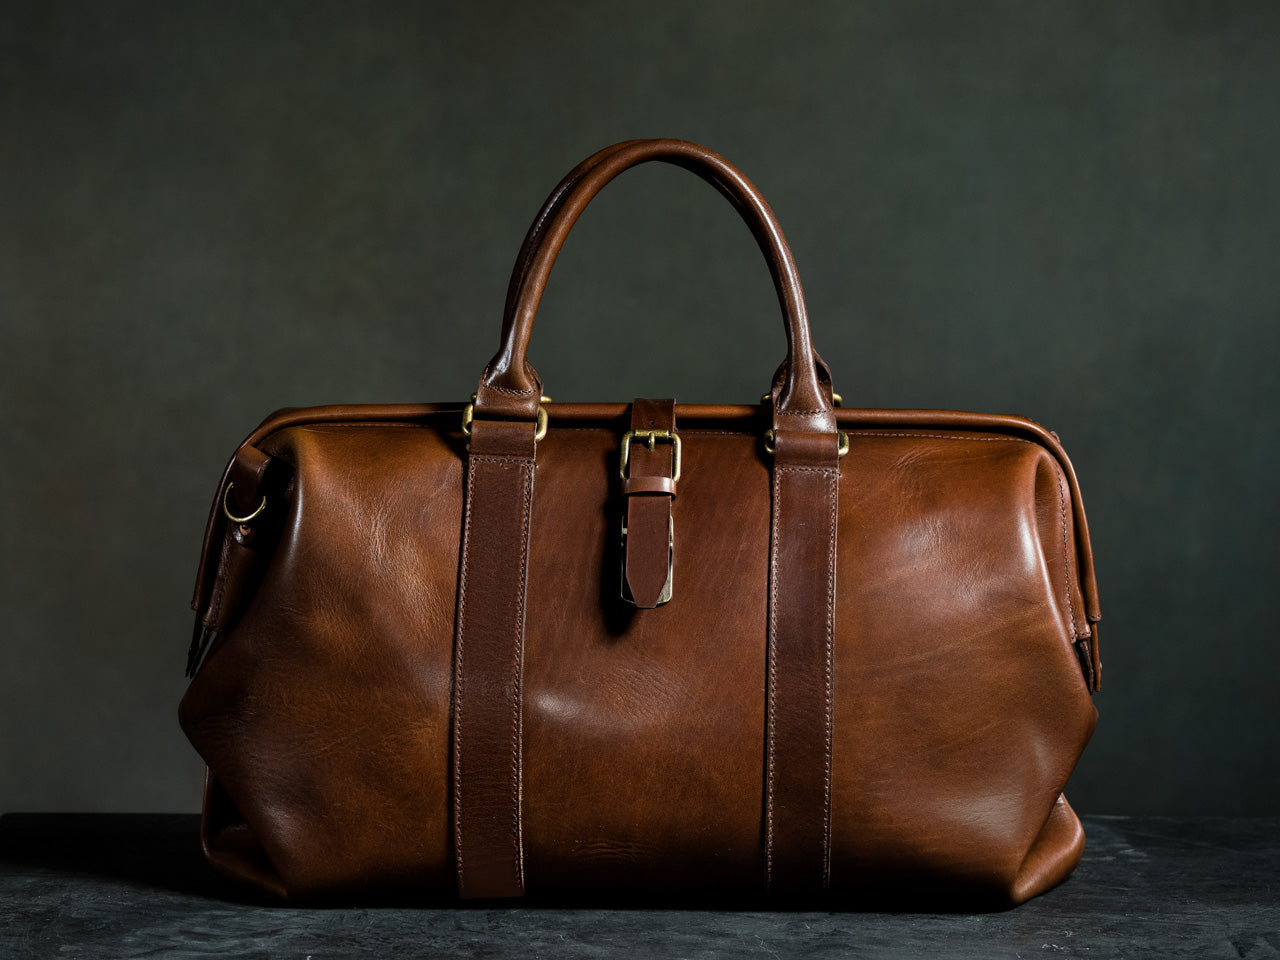 Satchel & Page leather bags